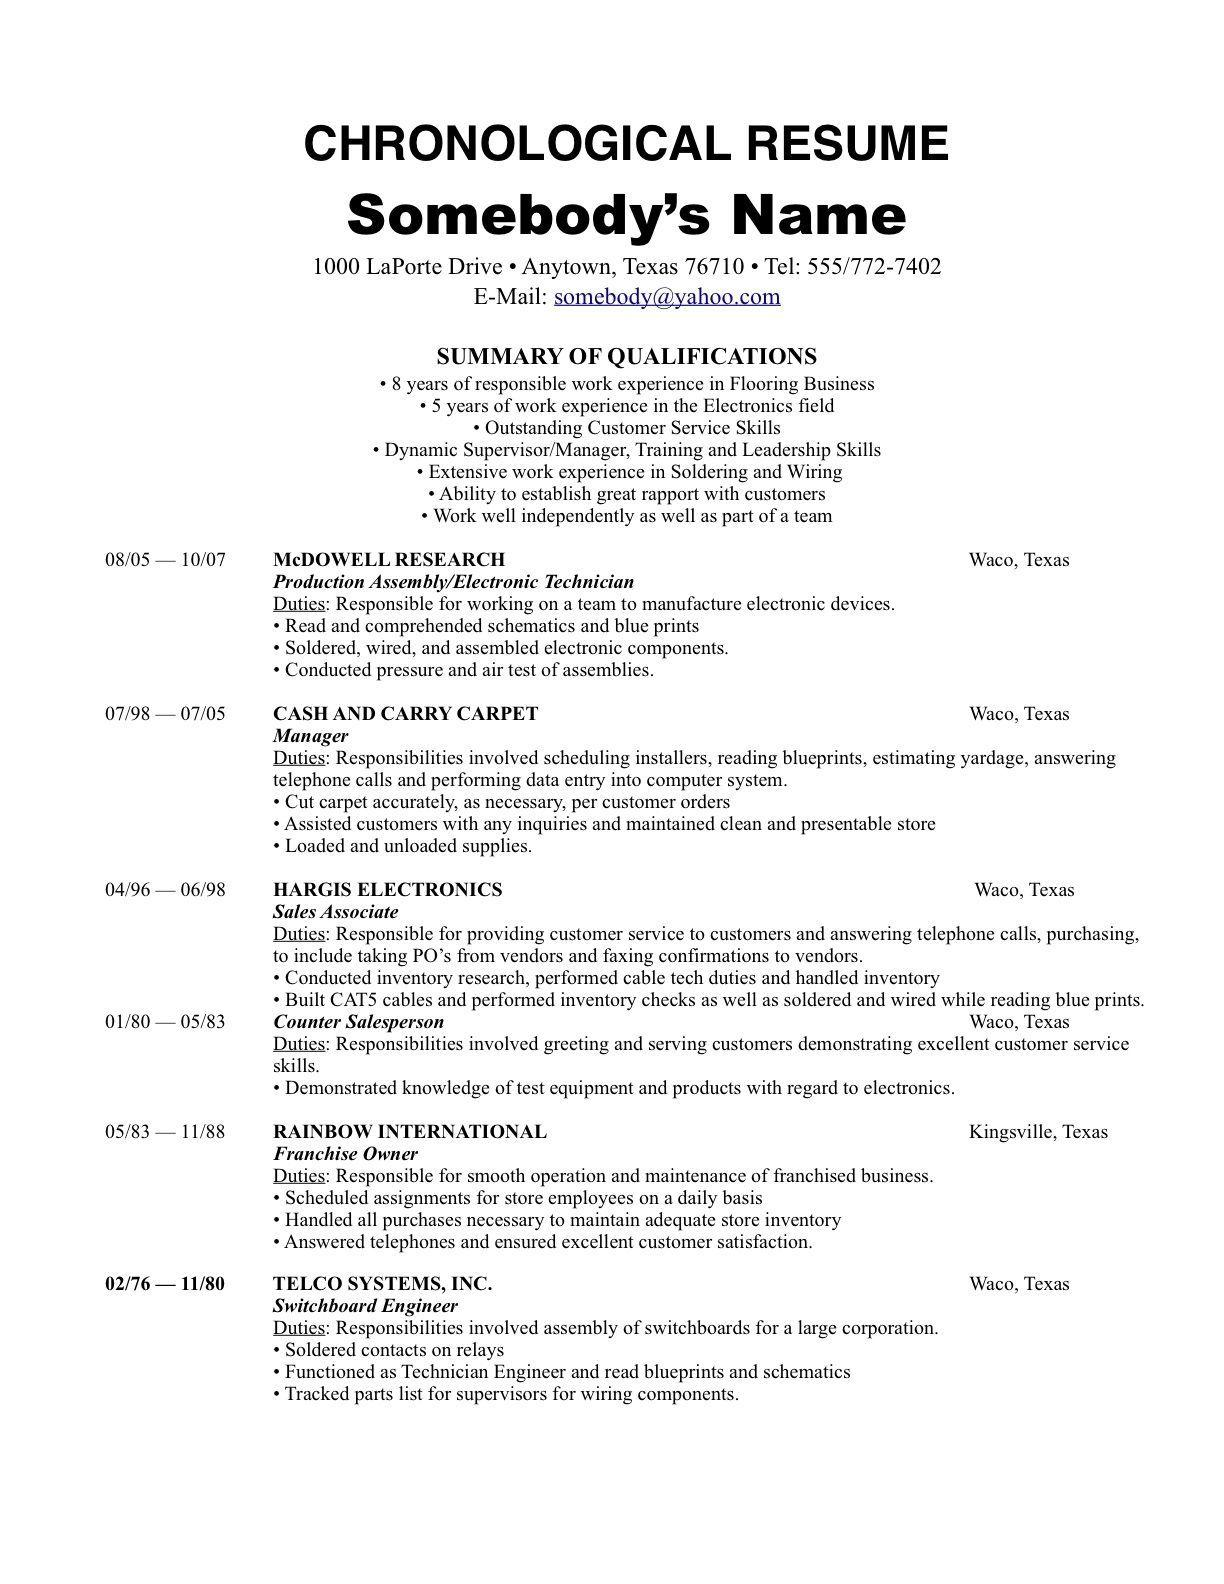 87 Top Chronological Resume Template for Design